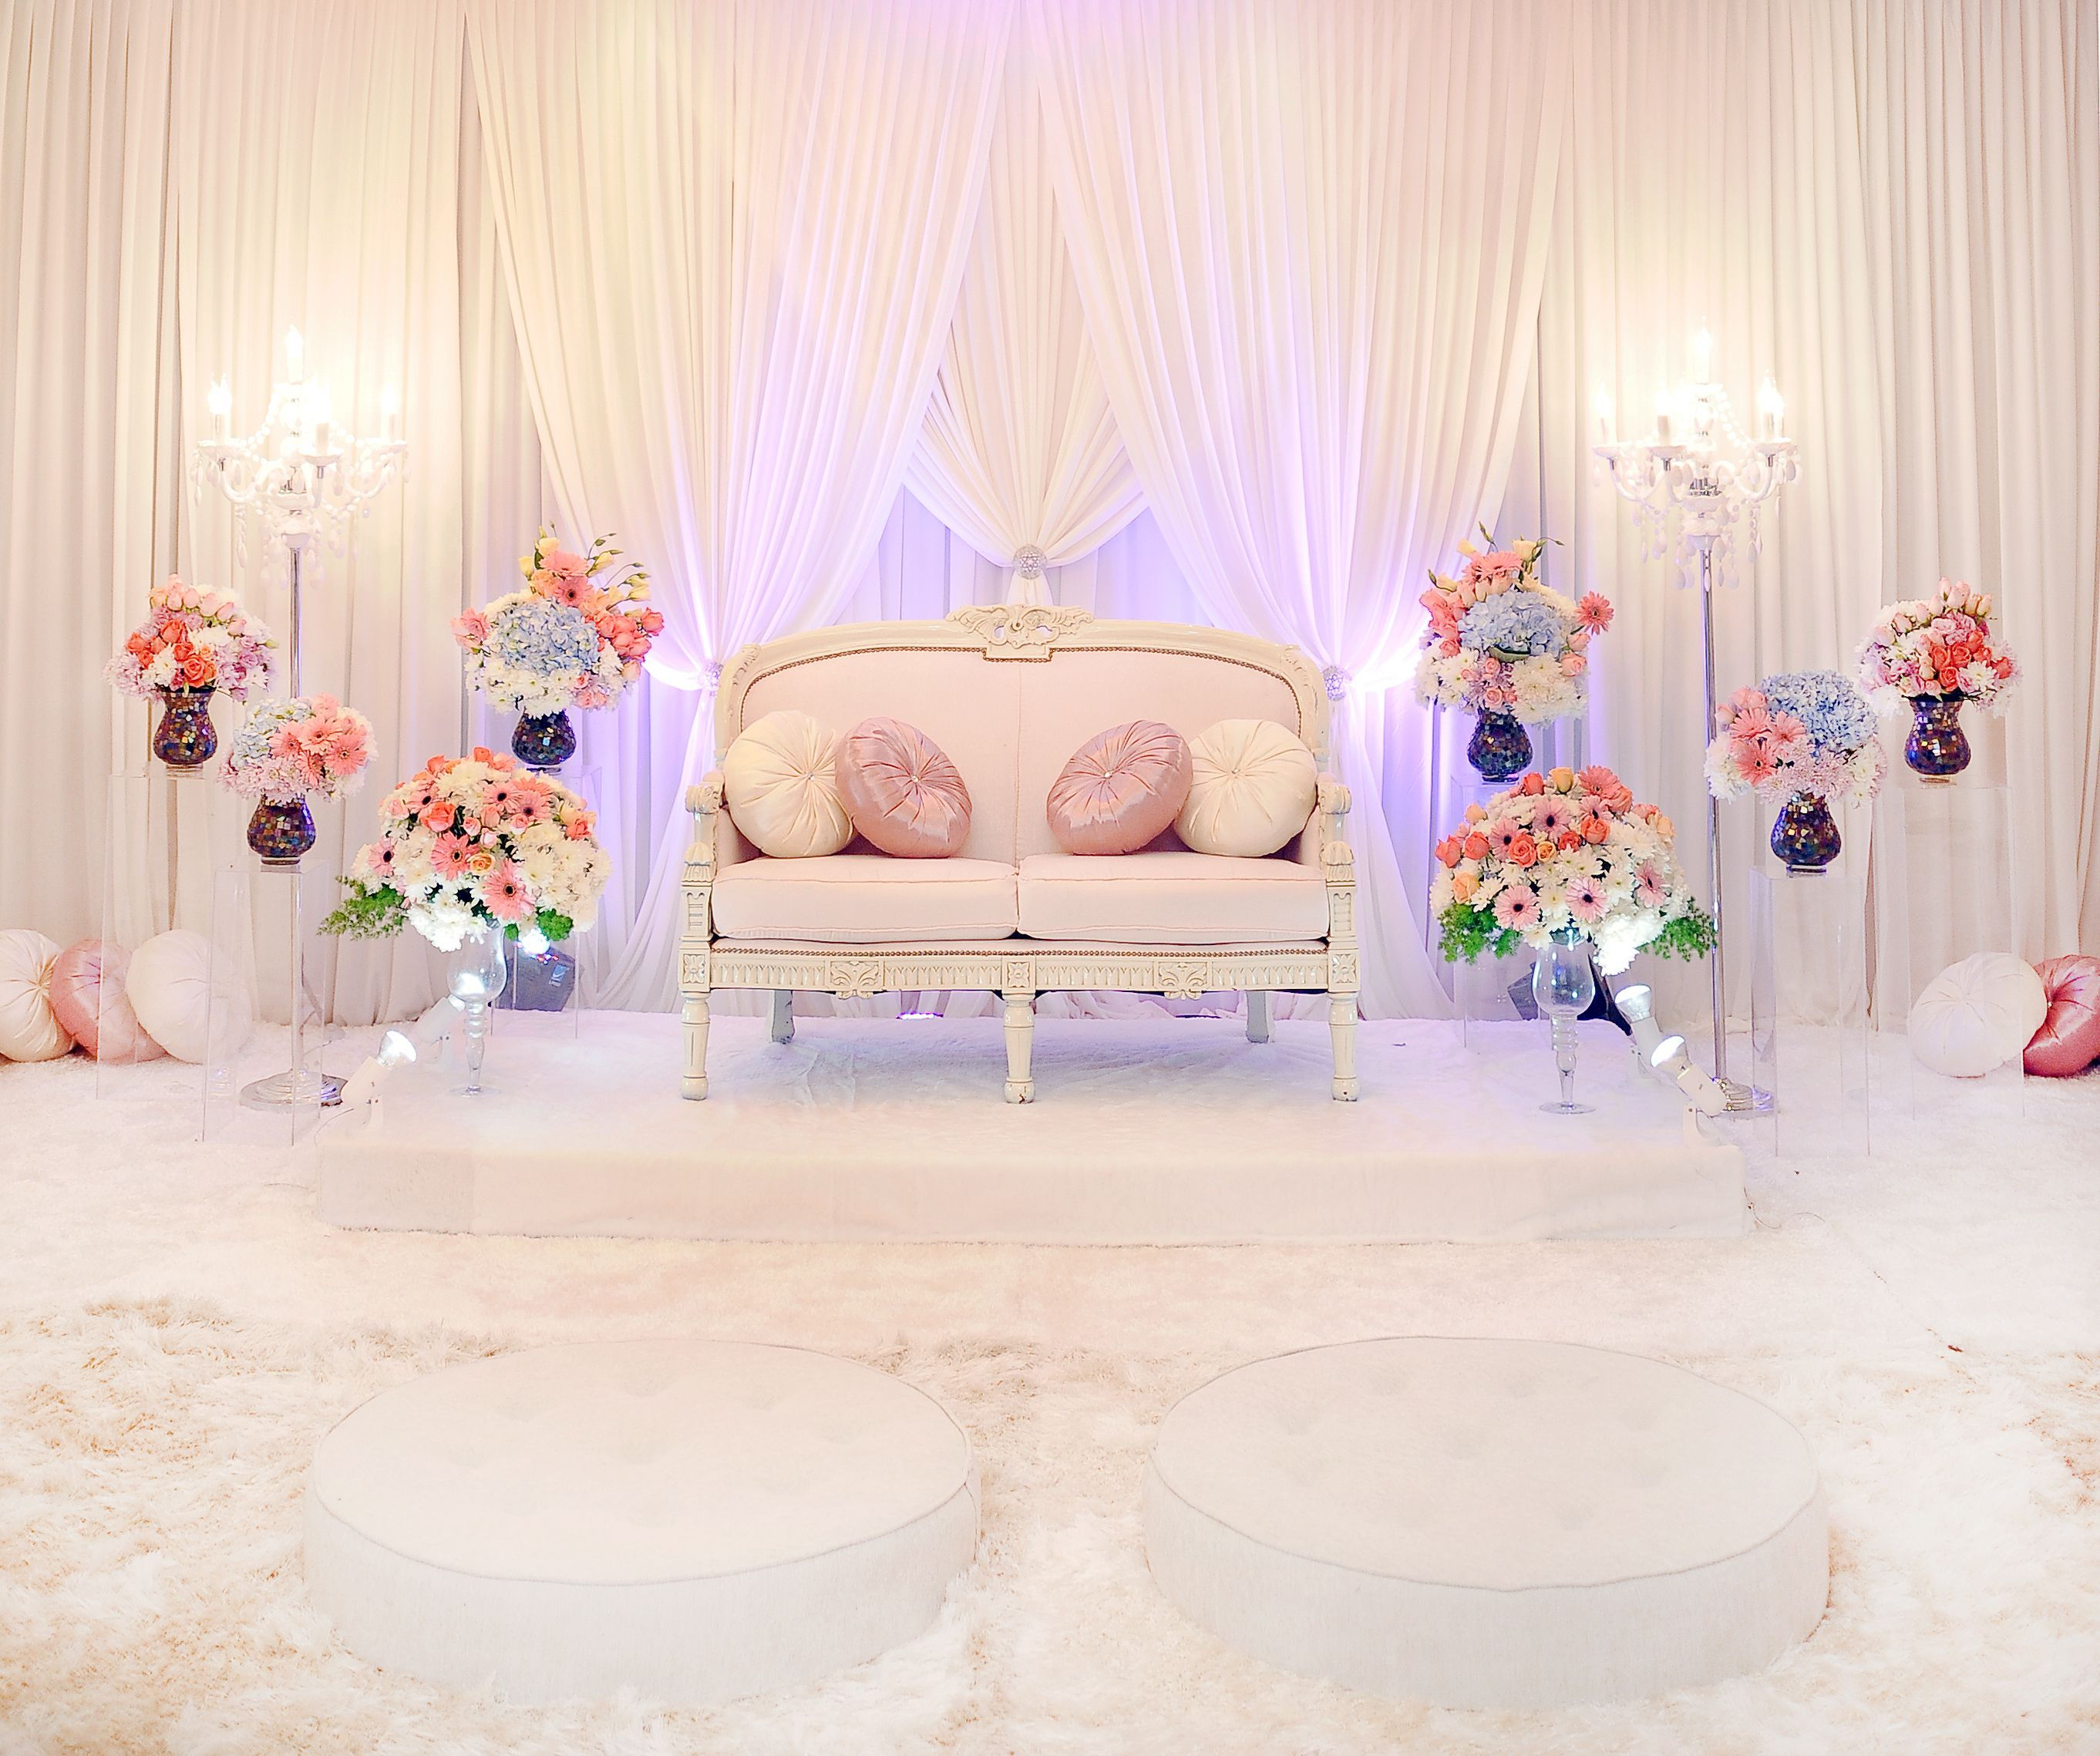 Wedding decorations background  pastel pelamin  Asian wedding stages  Pinterest  Pastels Wedding